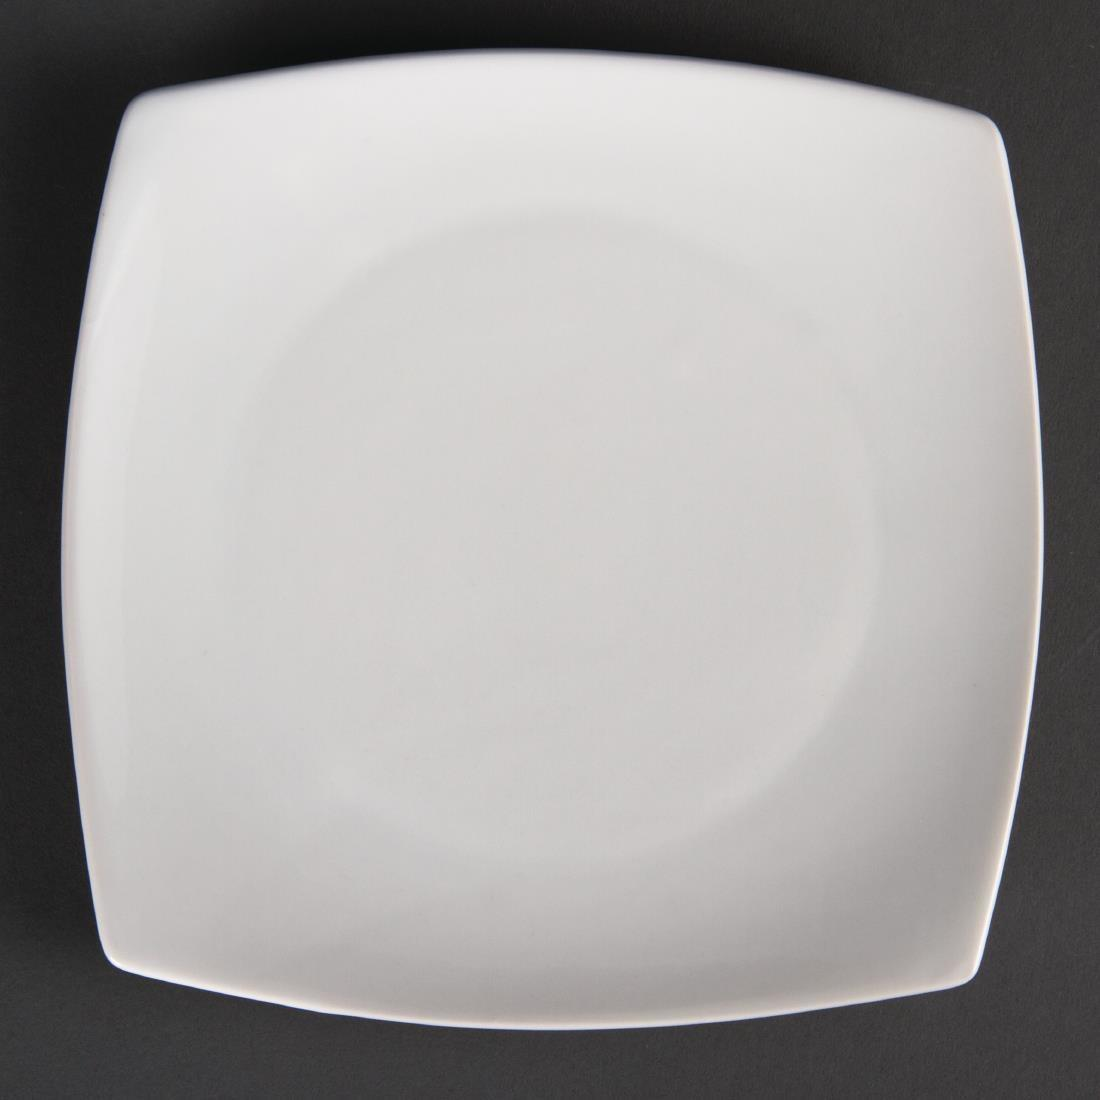 Olympia Whiteware Rounded Square Plates 185mm